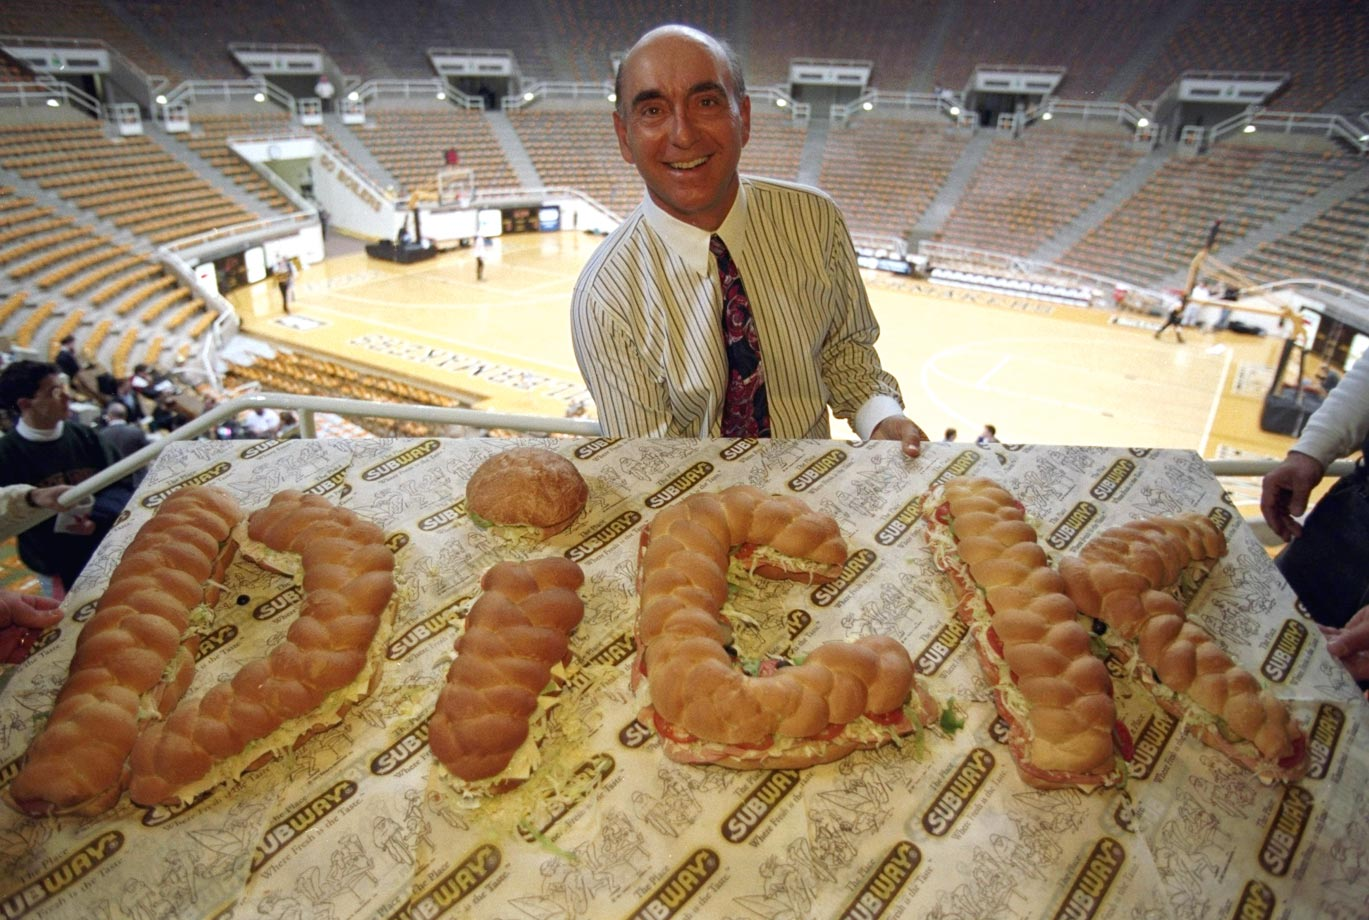 It's not easy to get beloved basketball broadcaster Dick Vitale to stop talking, but this customized Dickie V sandwich spread probably kept his mouth full for a while.